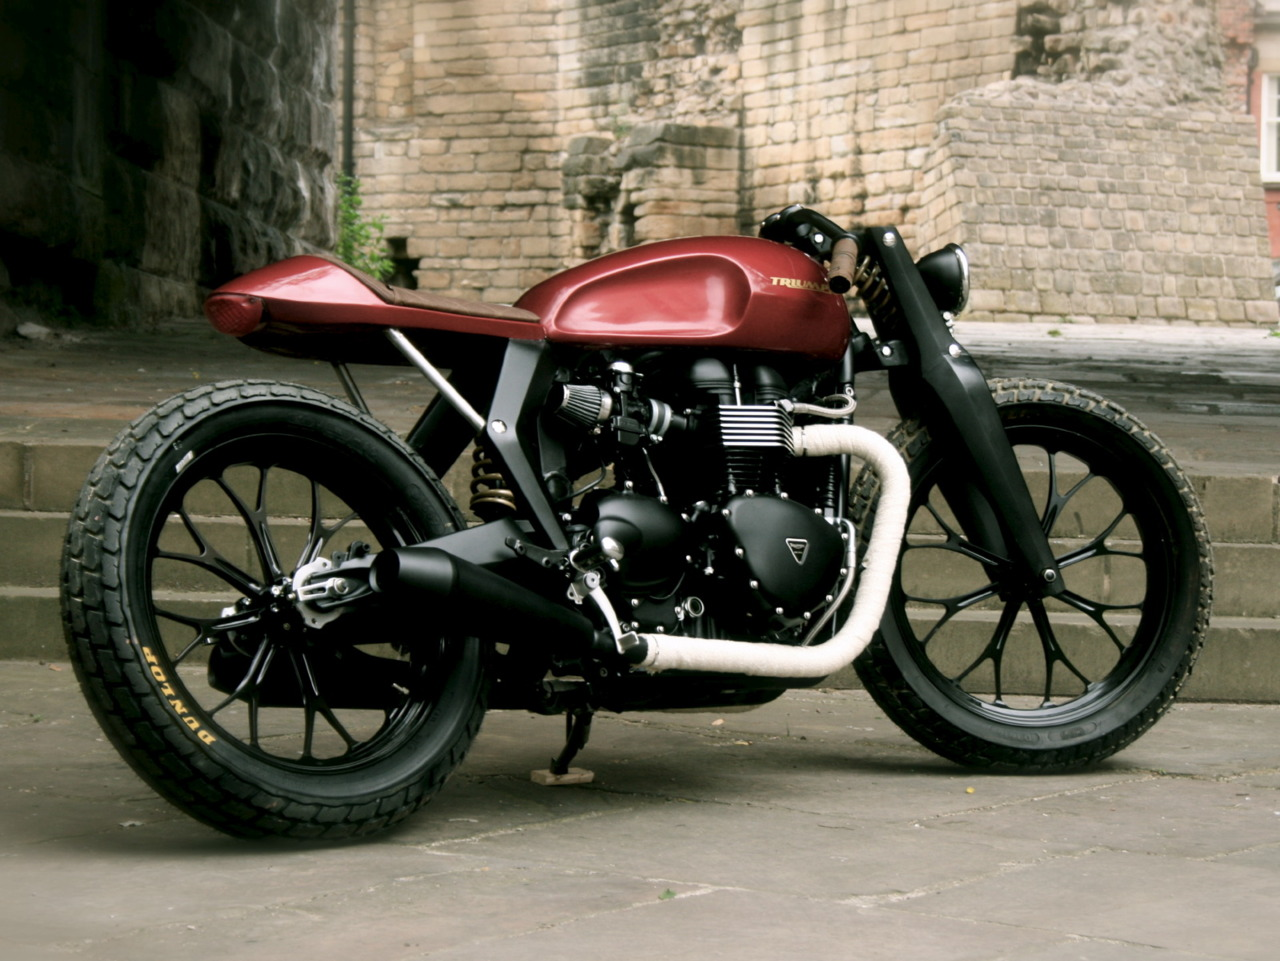 Honda Cb750 Nighthawk Cafe Racer besides Black And Copper 550 Custom Built Motorcycle as well Bmw R90 Bobber By Spirit Lake Cycles together with 1976 Honda Cb750 Supersport Ruby Red also 2014 02 01 archive. on kottmotorcycles